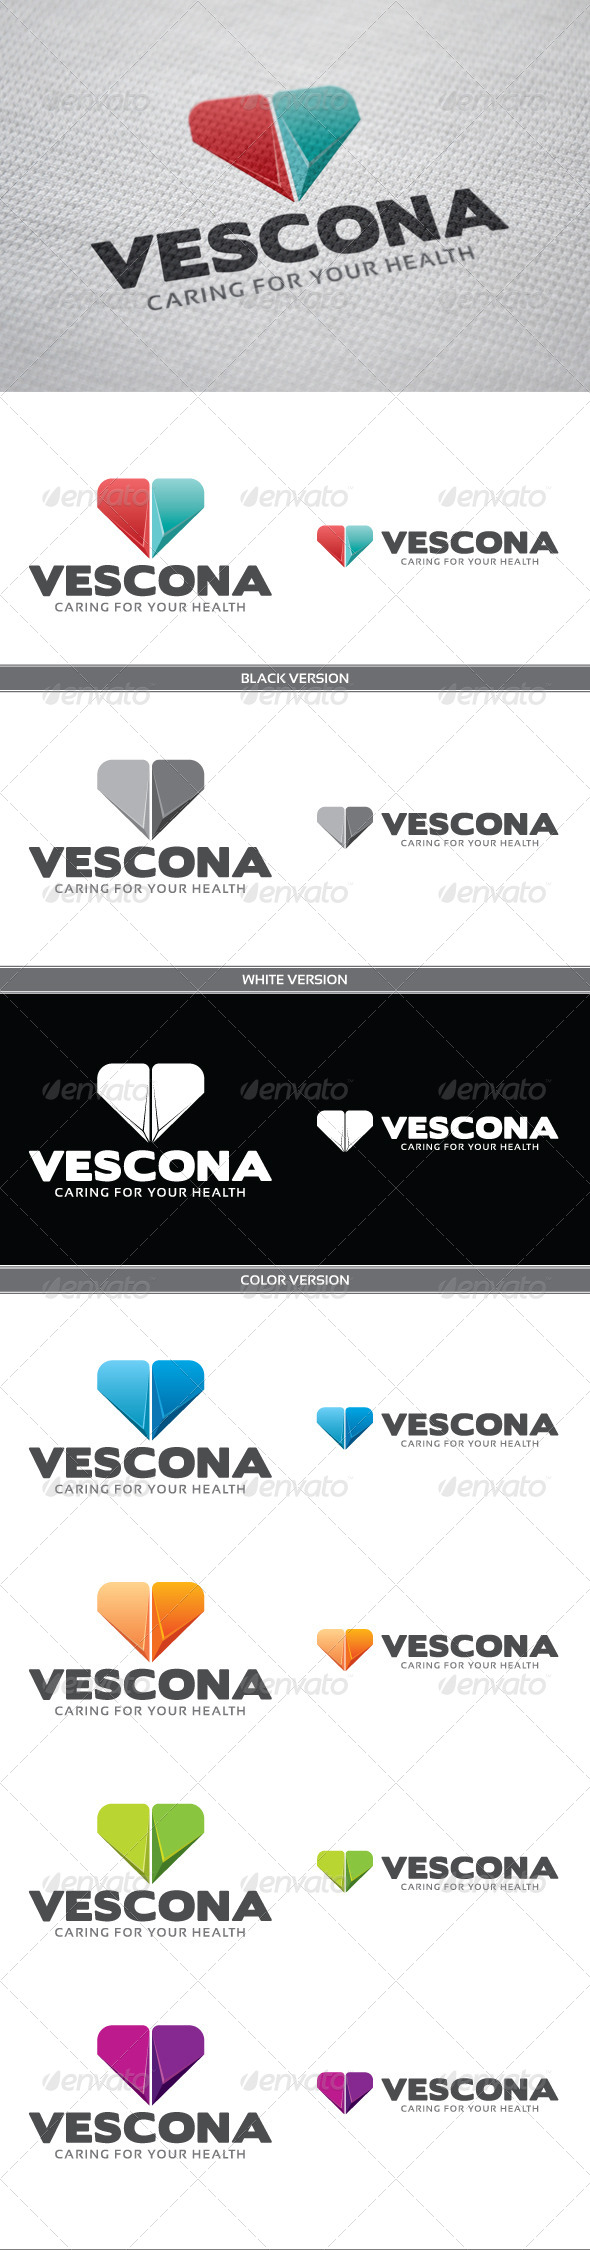 GraphicRiver Vescona 4124203